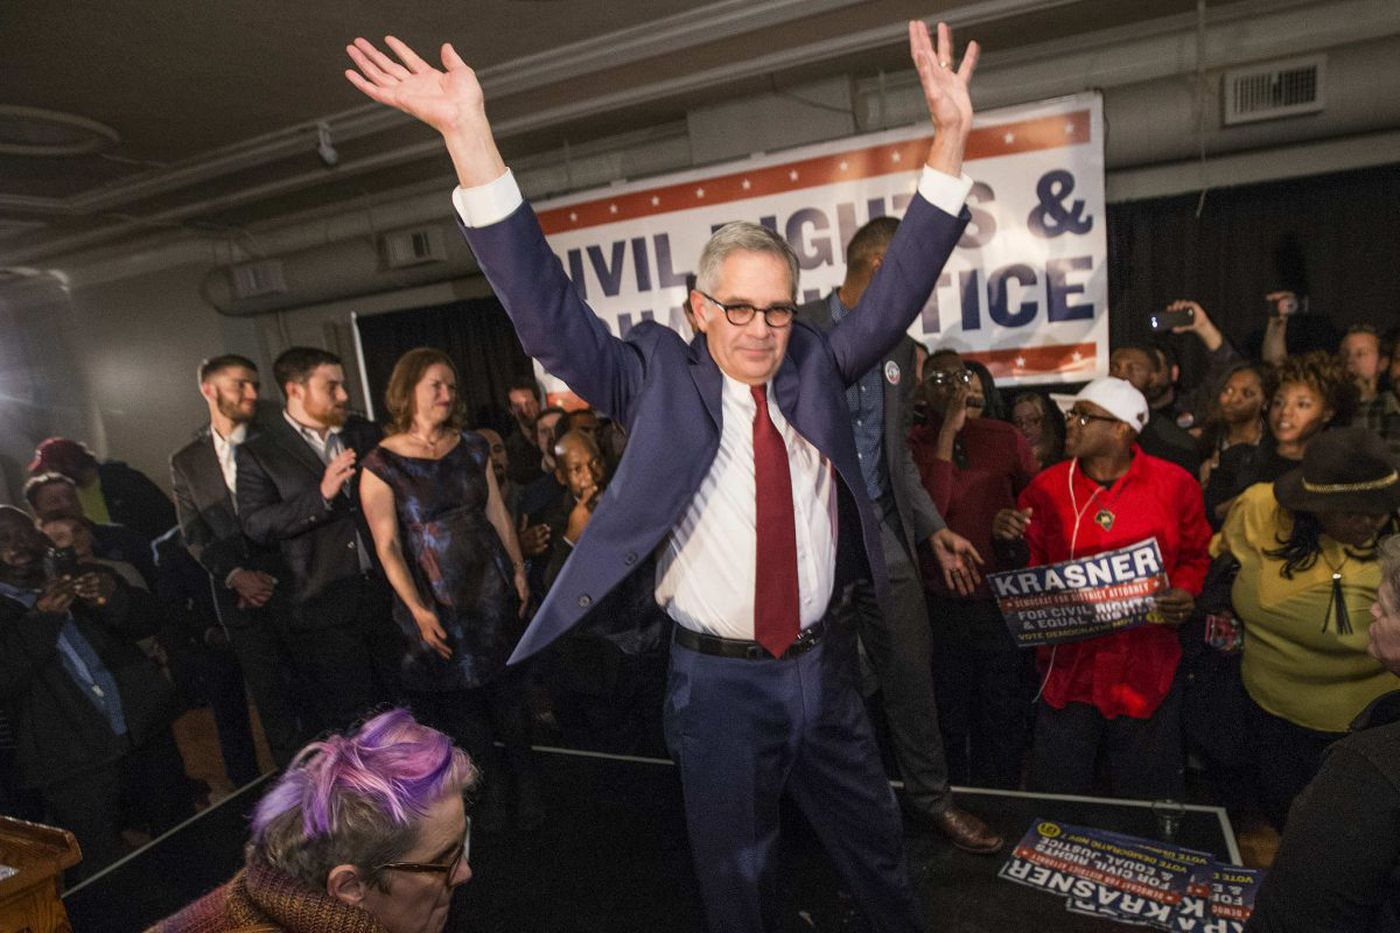 So Larry Krasner won the DA's race - now the work begins | Mike Newall